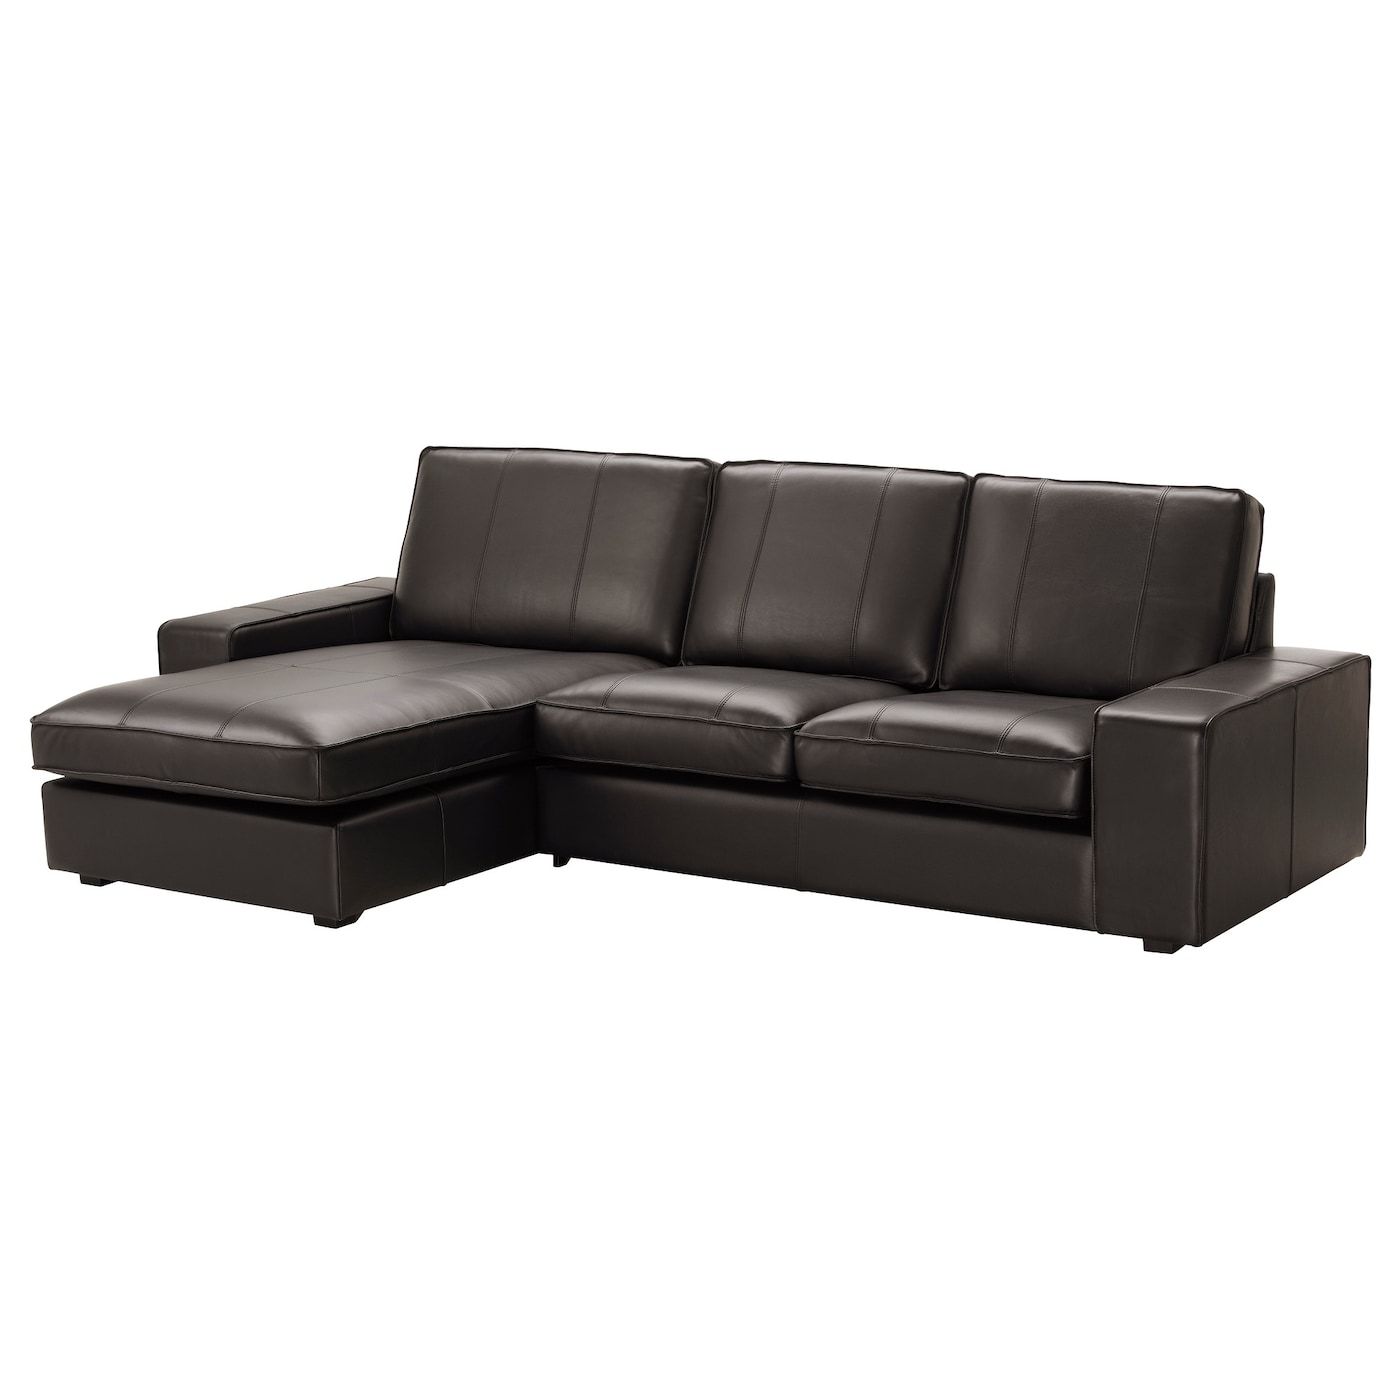 Leather coated fabric sofas ikea for Catalogos de sofas chaise longue